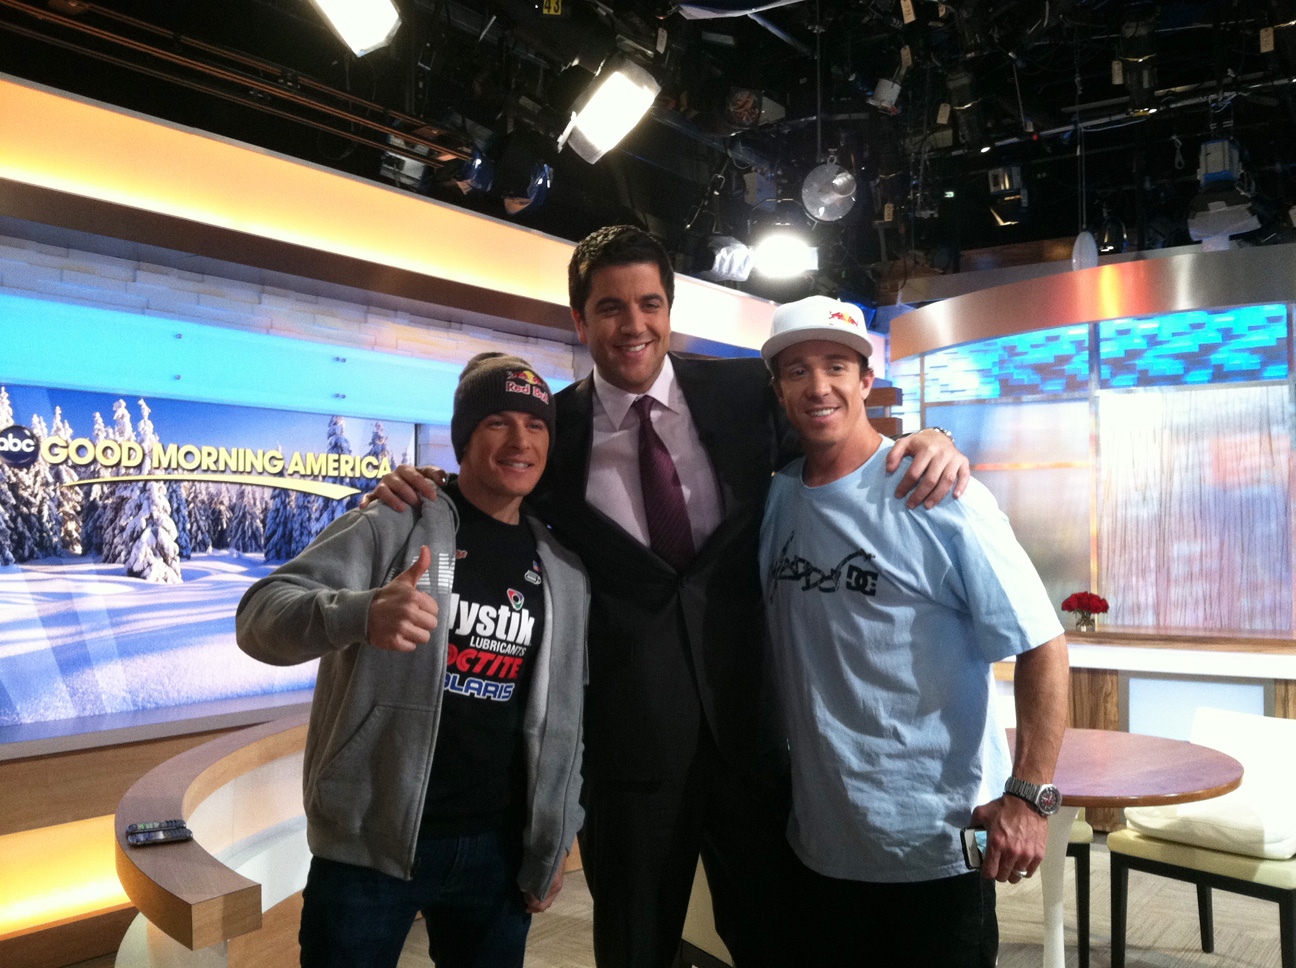 Good Morning America Tomorrow : Launchinlevi tune in robbie maddison and levi lavallee